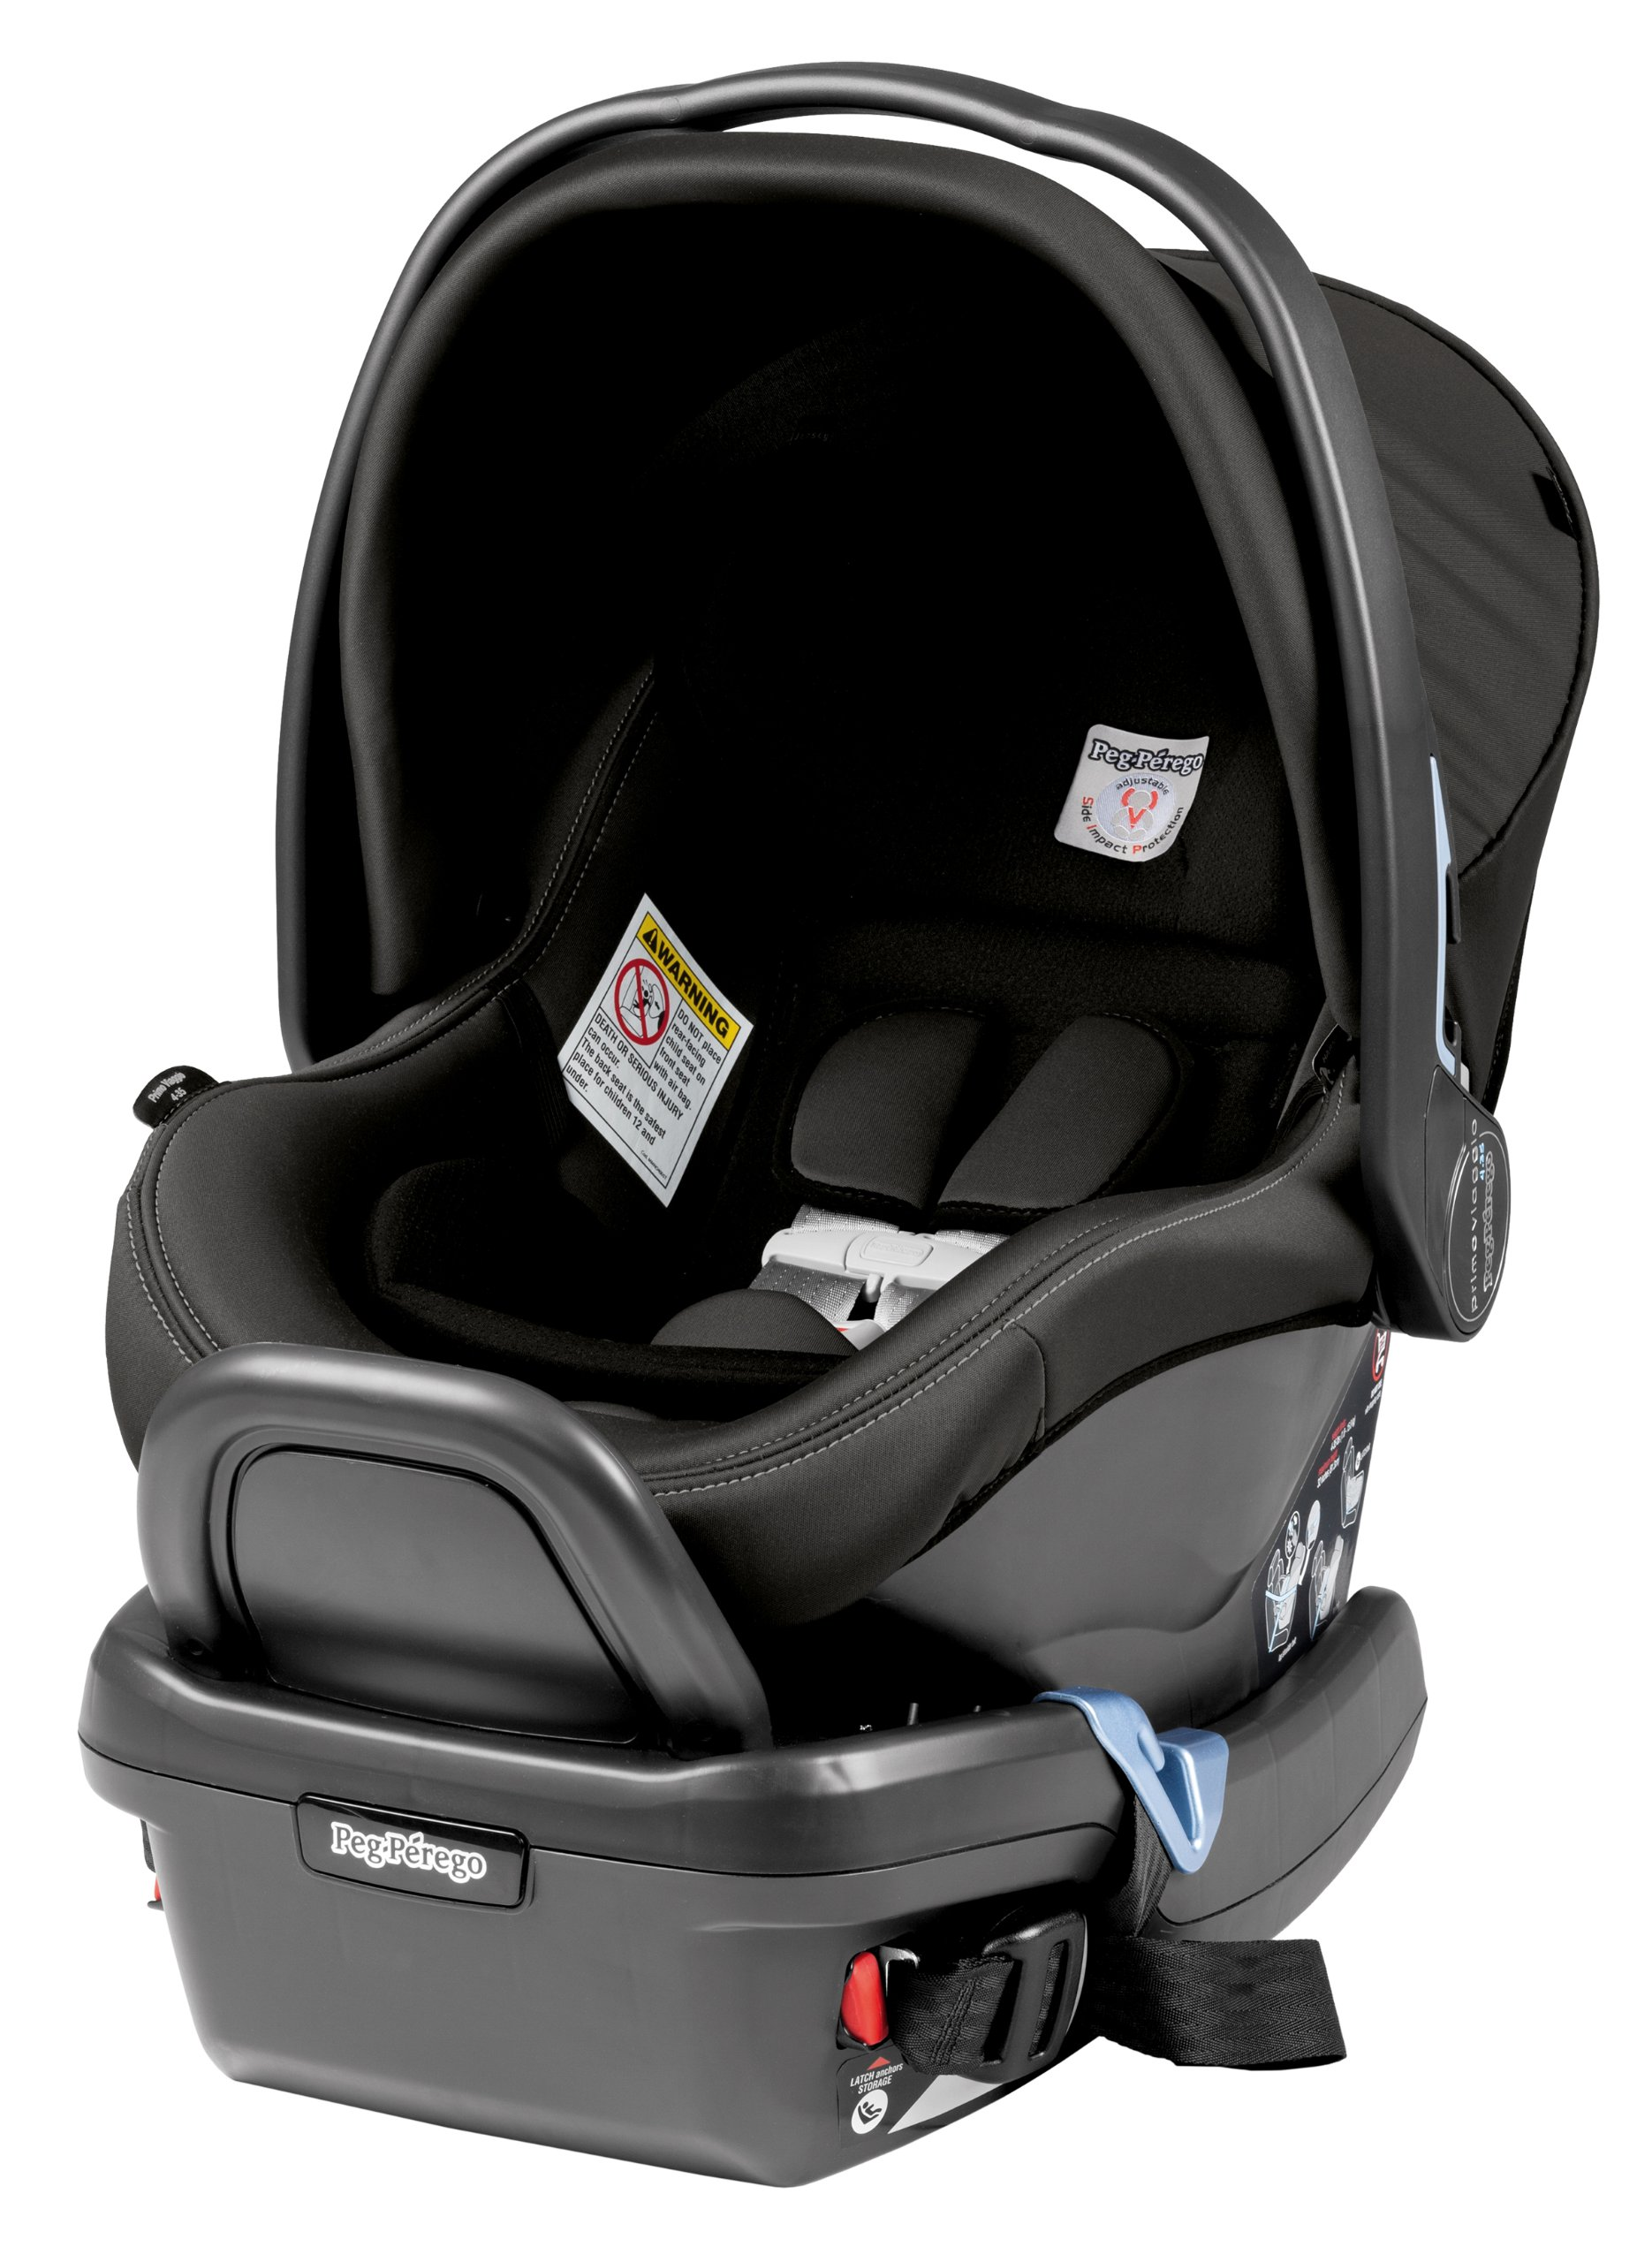 amazon com peg perego base primo viaggio 4 35 infant car seat